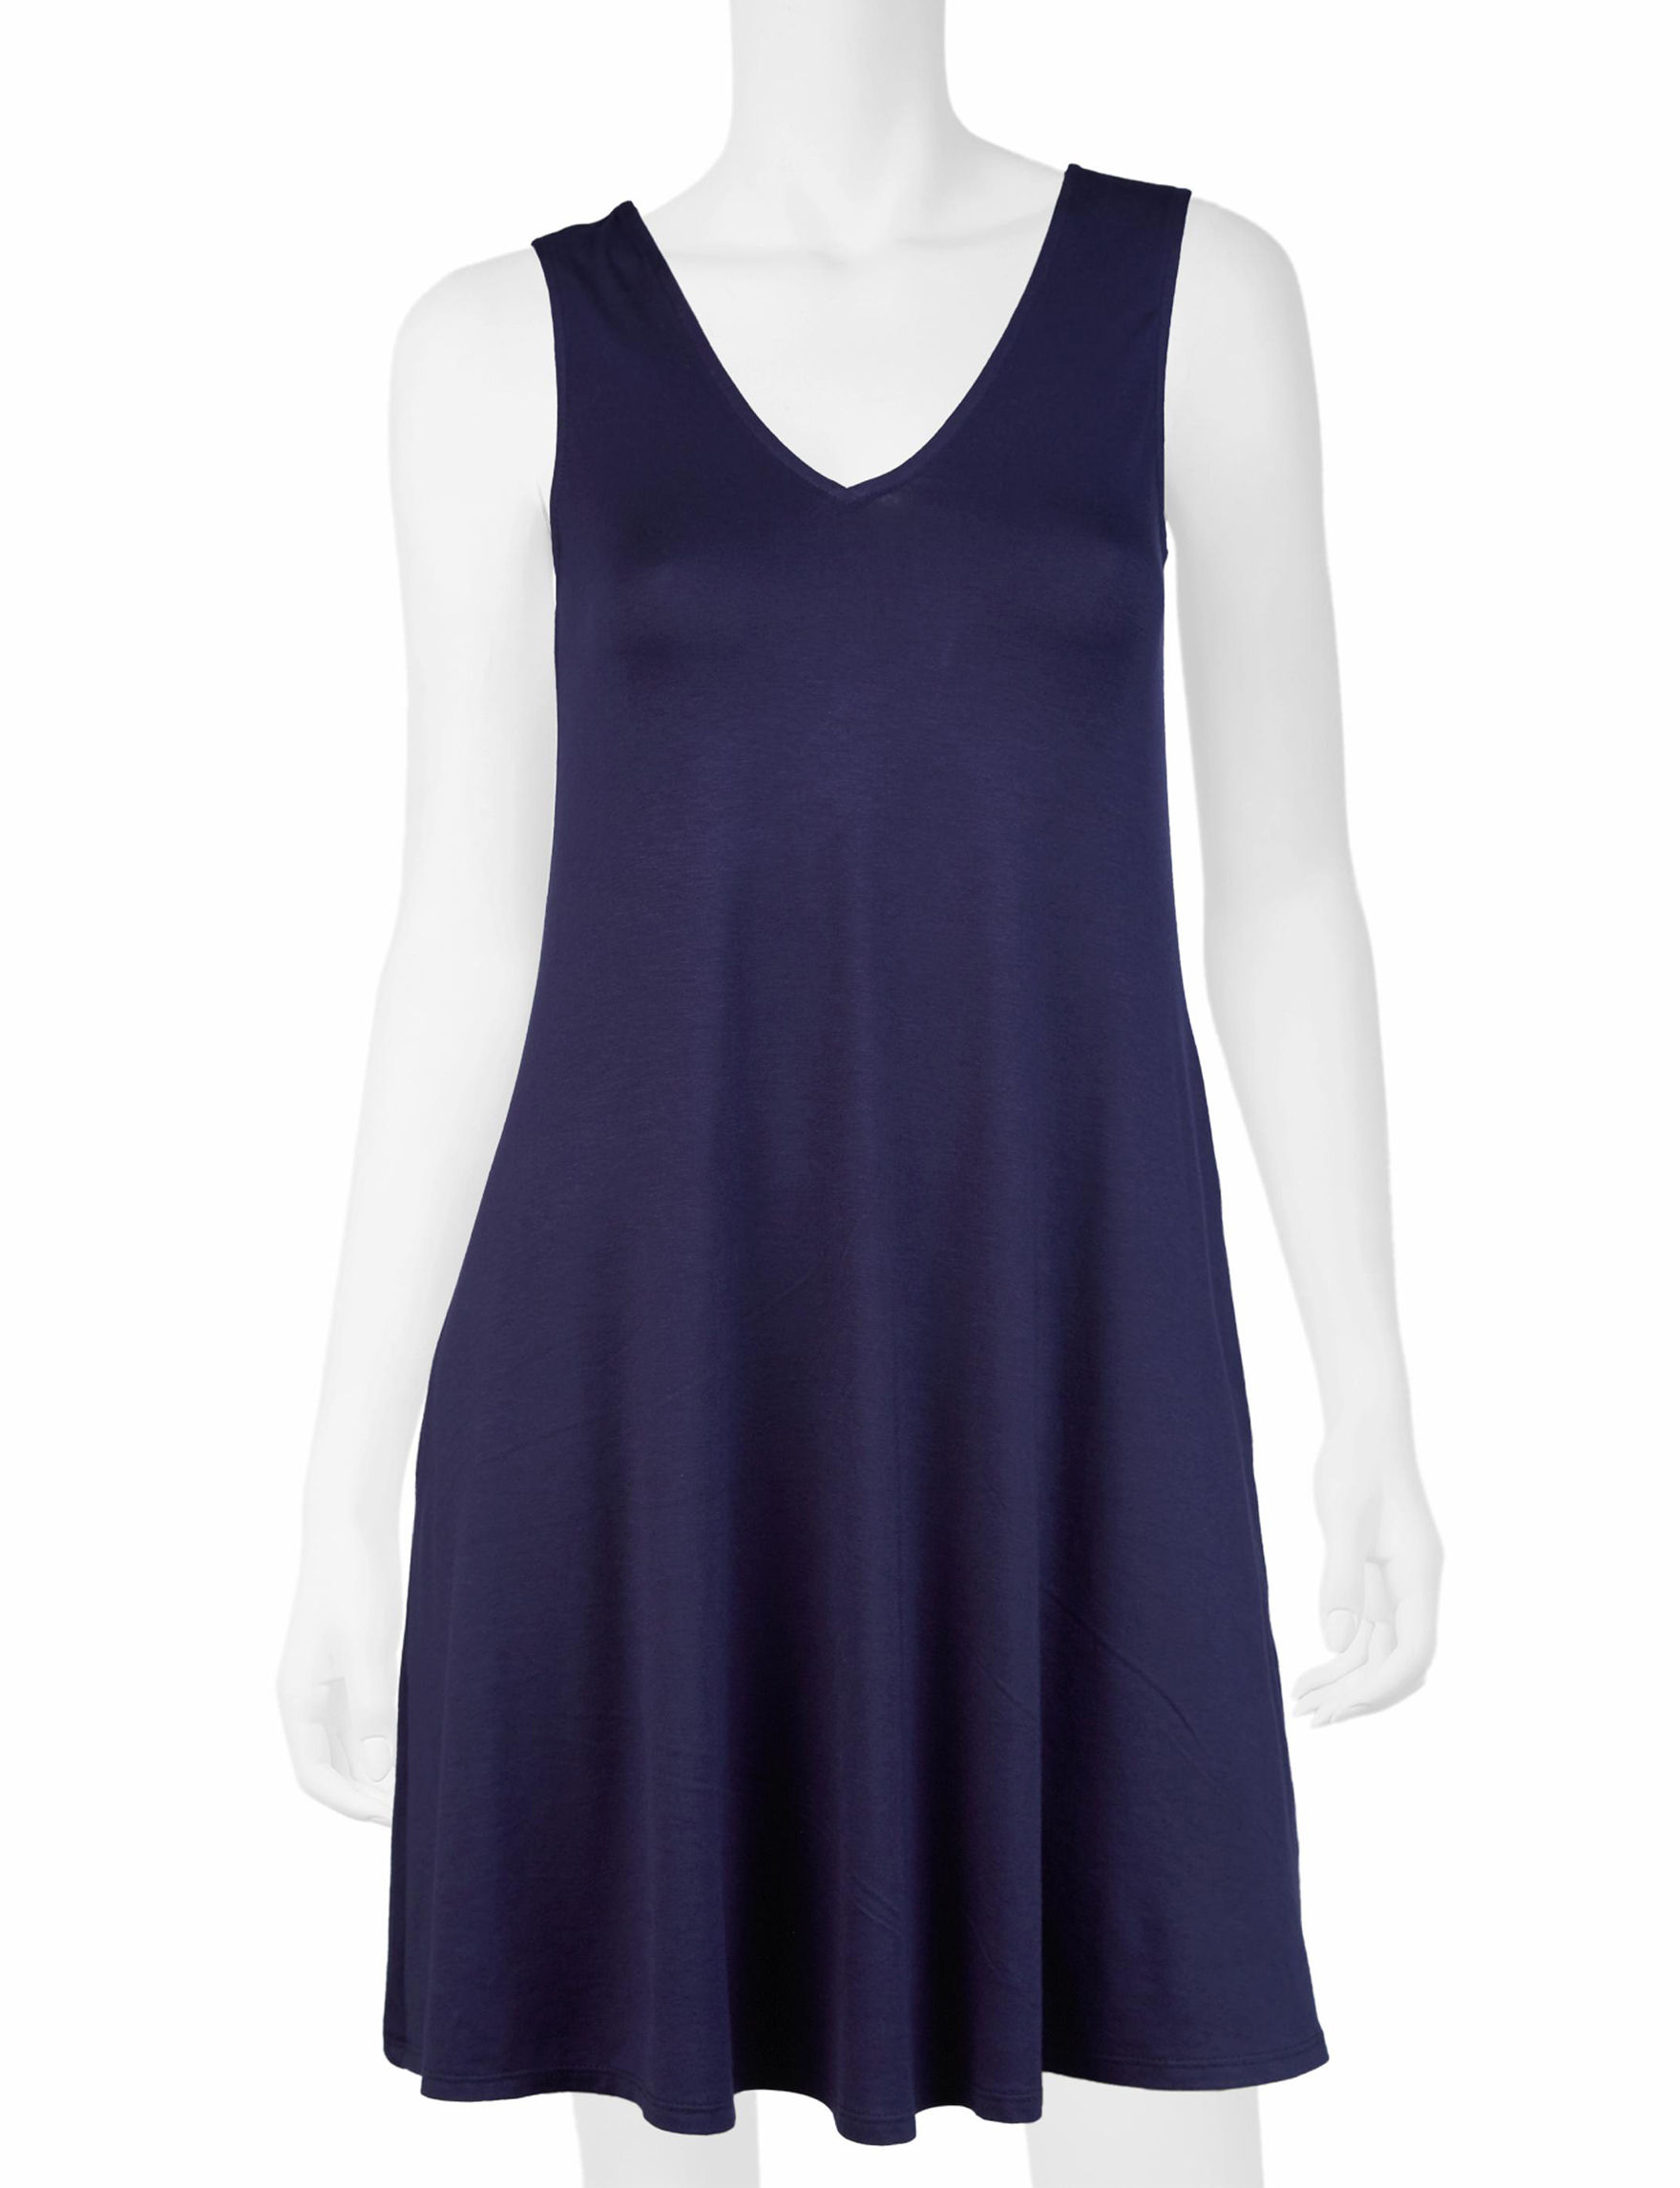 A. Byer Navy Everyday & Casual Shift Dresses